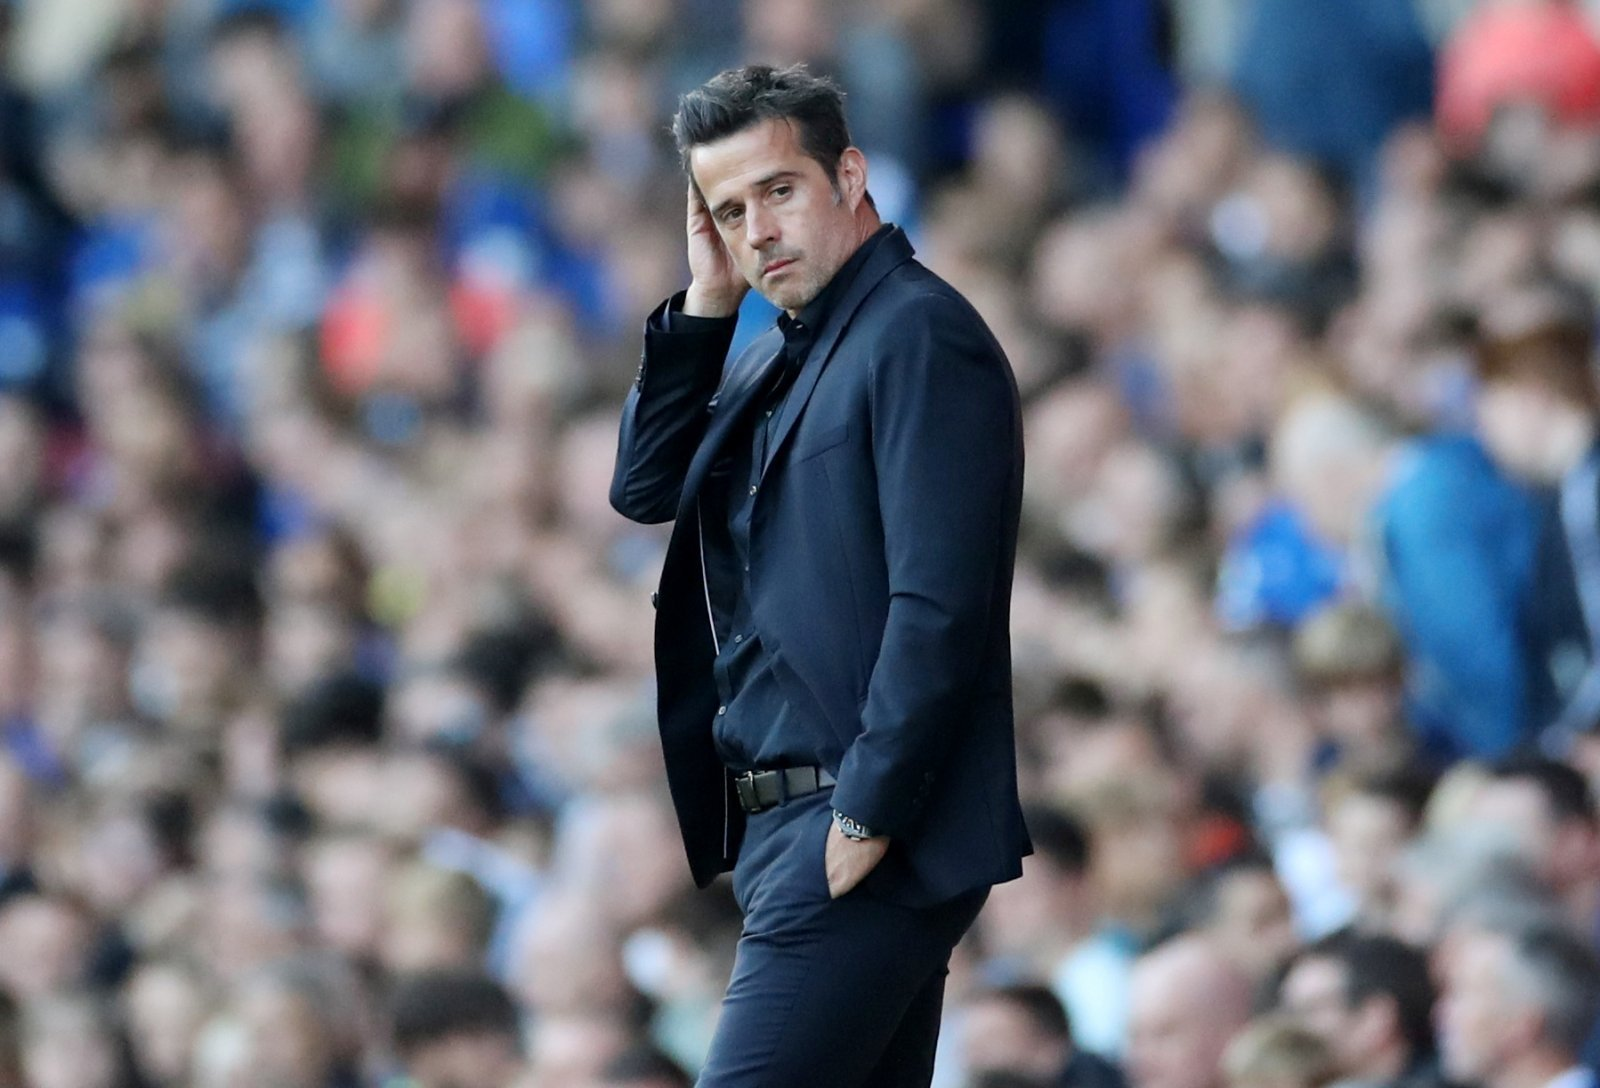 Everton: Fans send furious messages as patience runs out for Marco Silva